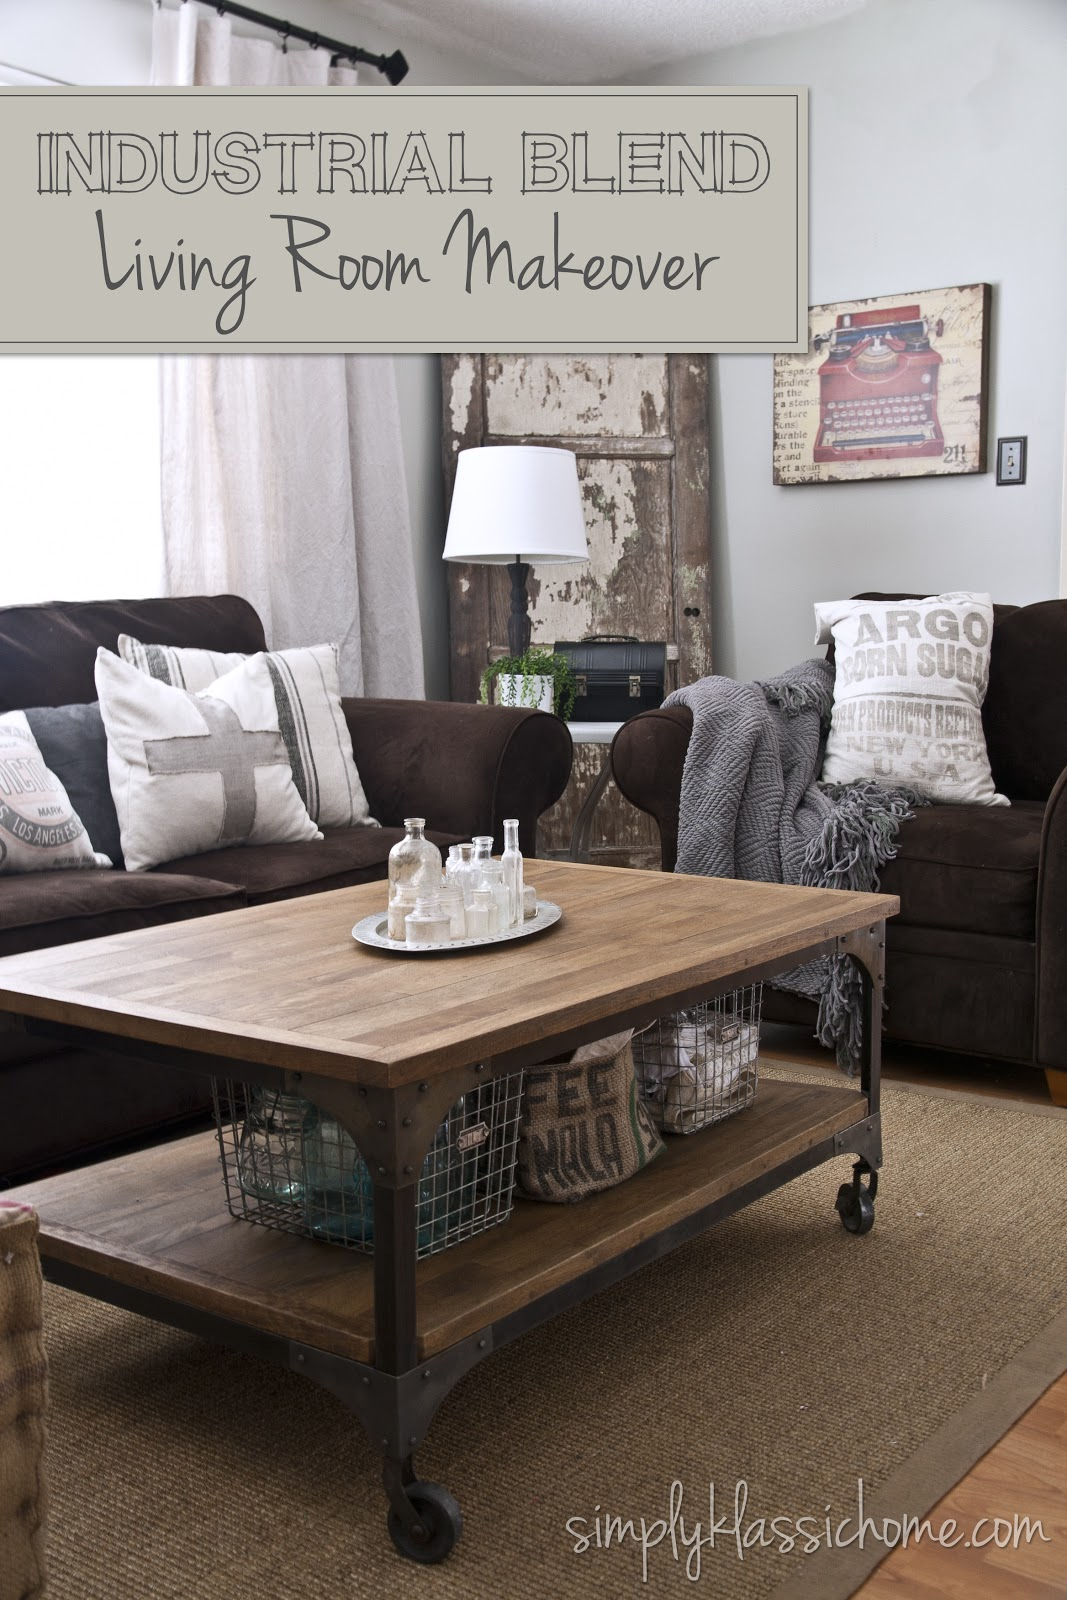 Industrial Grey Paint Industrial Blend Living Room Makeover Reveal Yellow